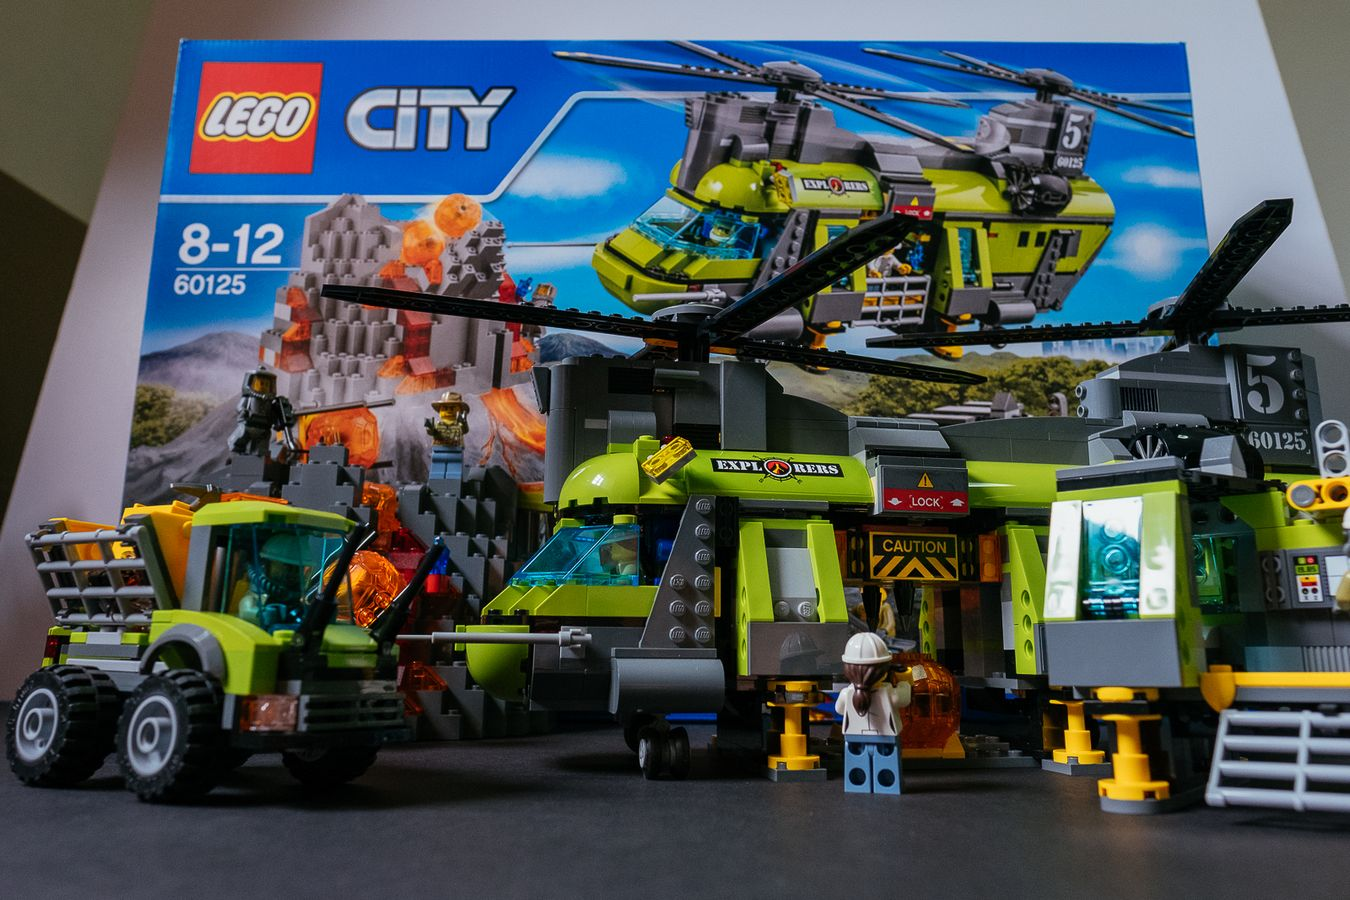 Geek Review: LEGO City Volcano Heavy-Lift Helicopter 60125 | Geek